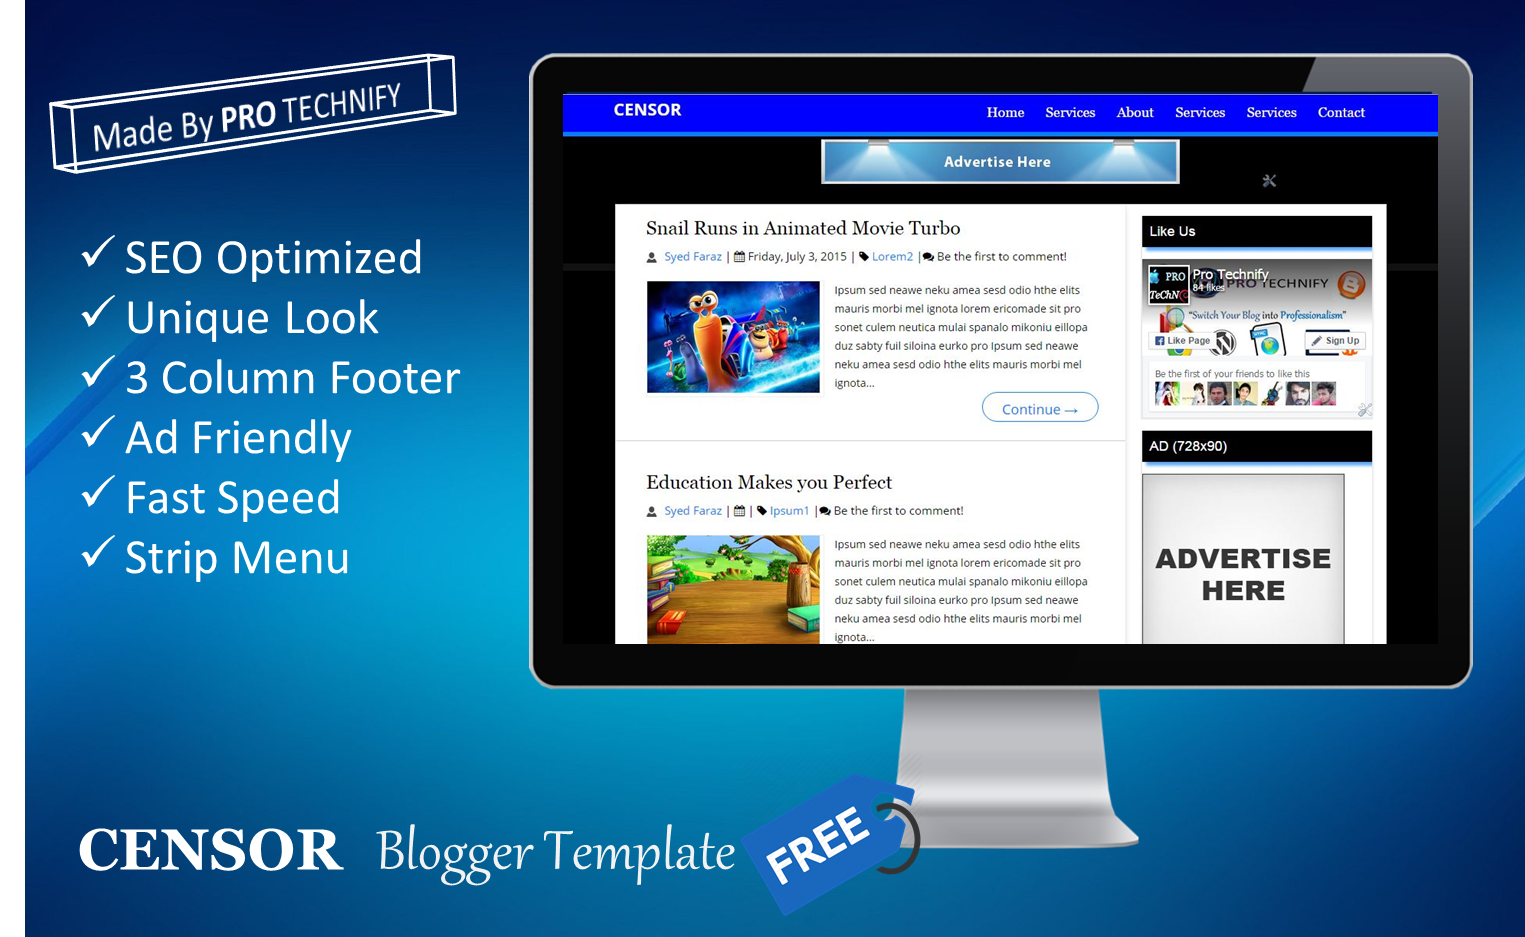 CENSOR SEO Friendly Blogger Template | PRO TECHNIFY